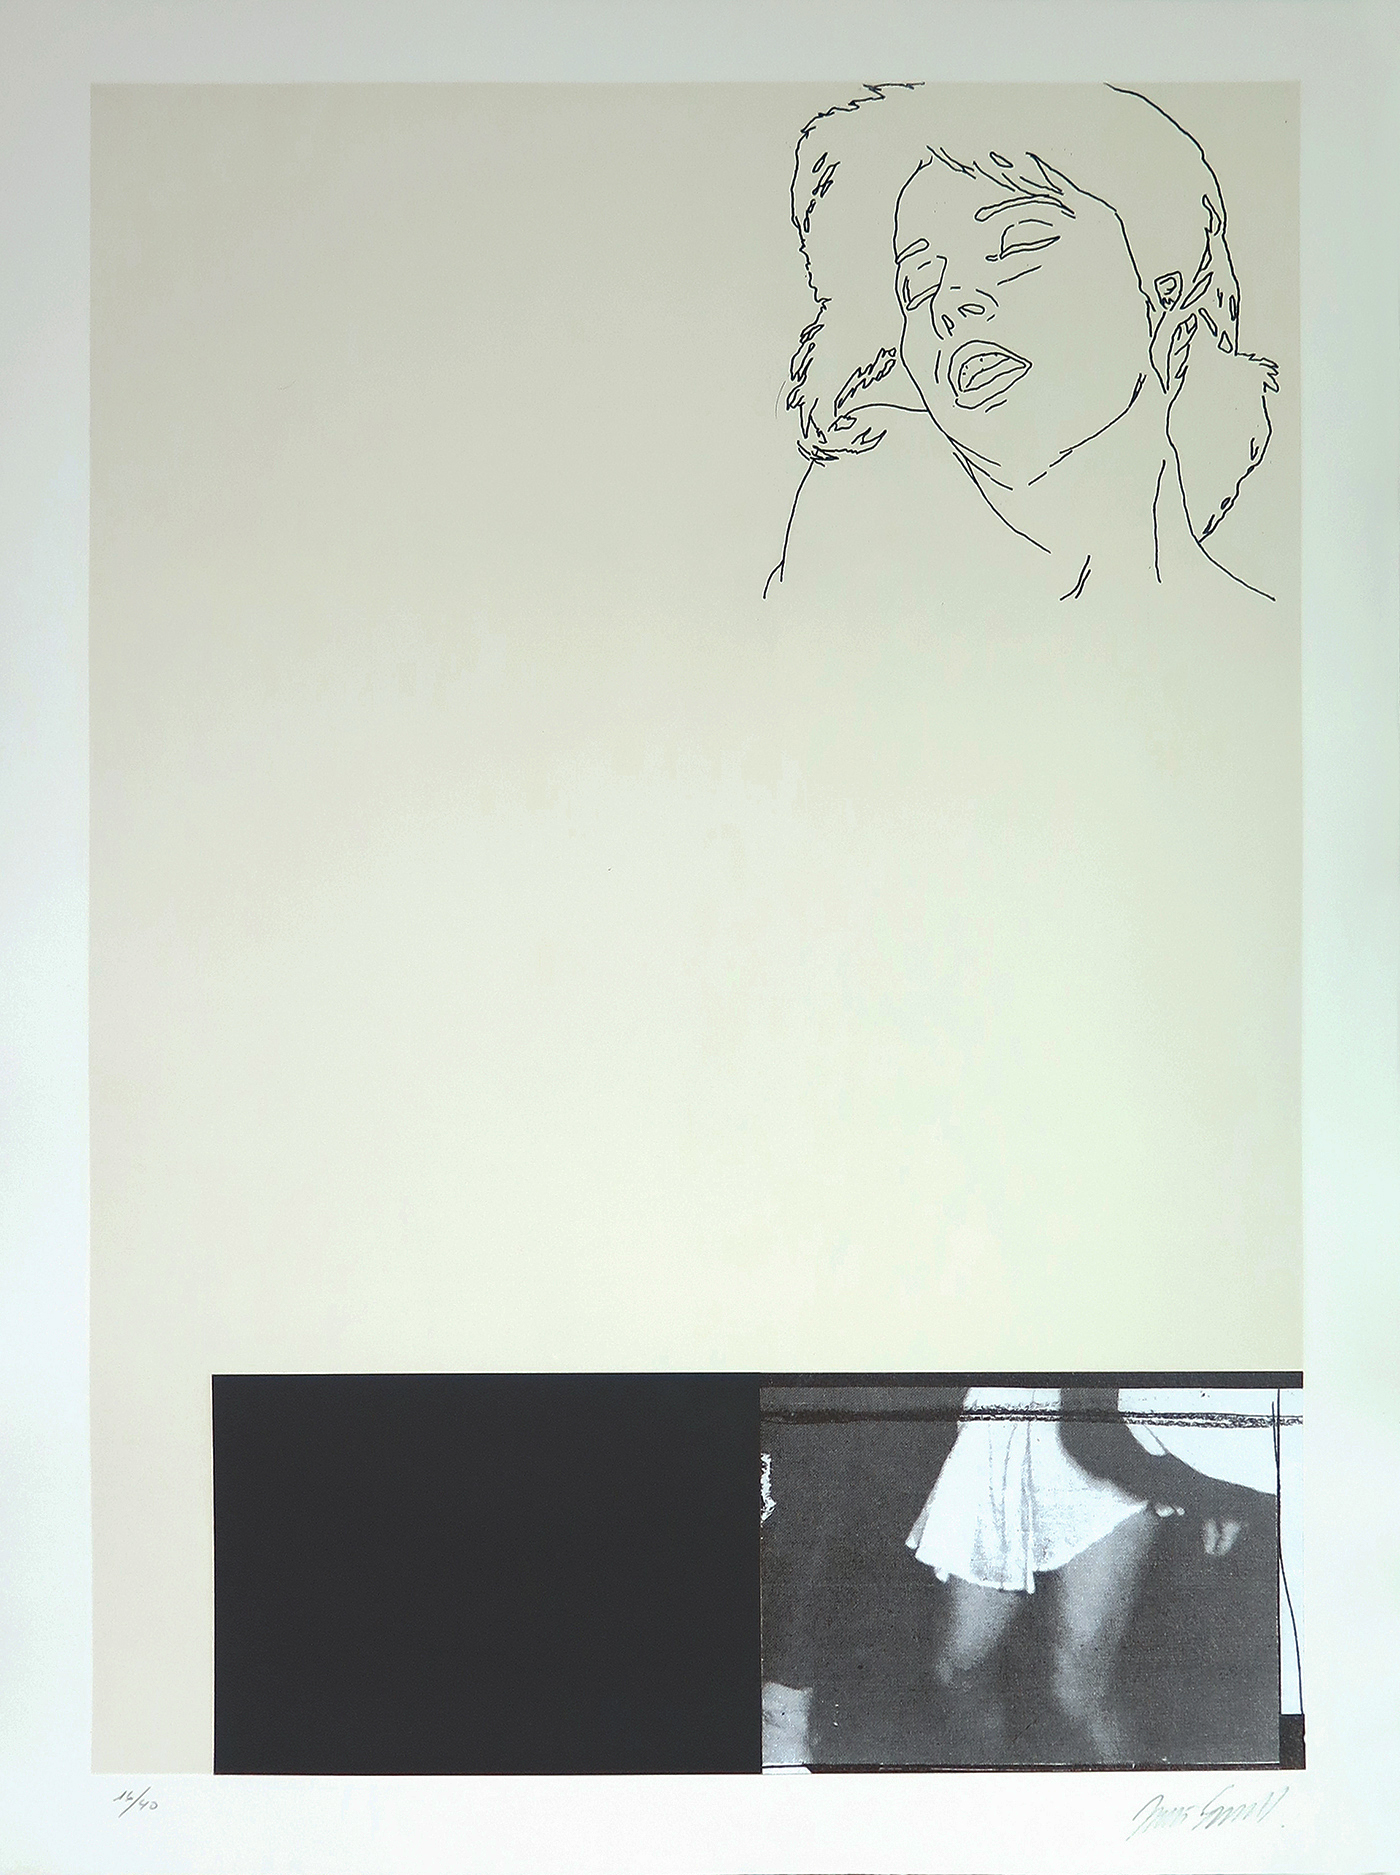 Without Title-8, mixed-media on guarro paper, nº 16-40, 76 x 56 cm